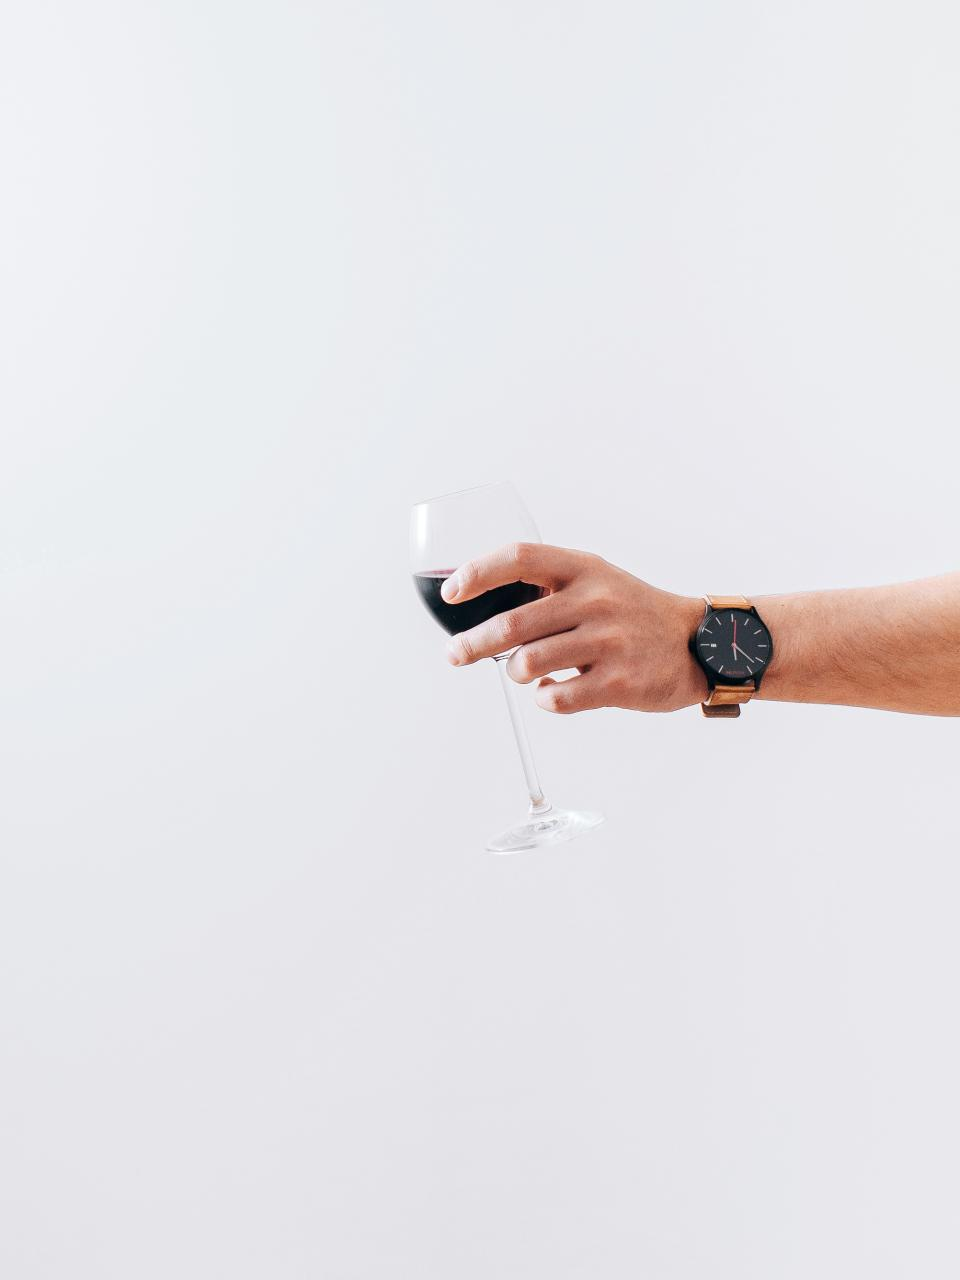 wine, glass, alcohol, drink, hands, watch, white